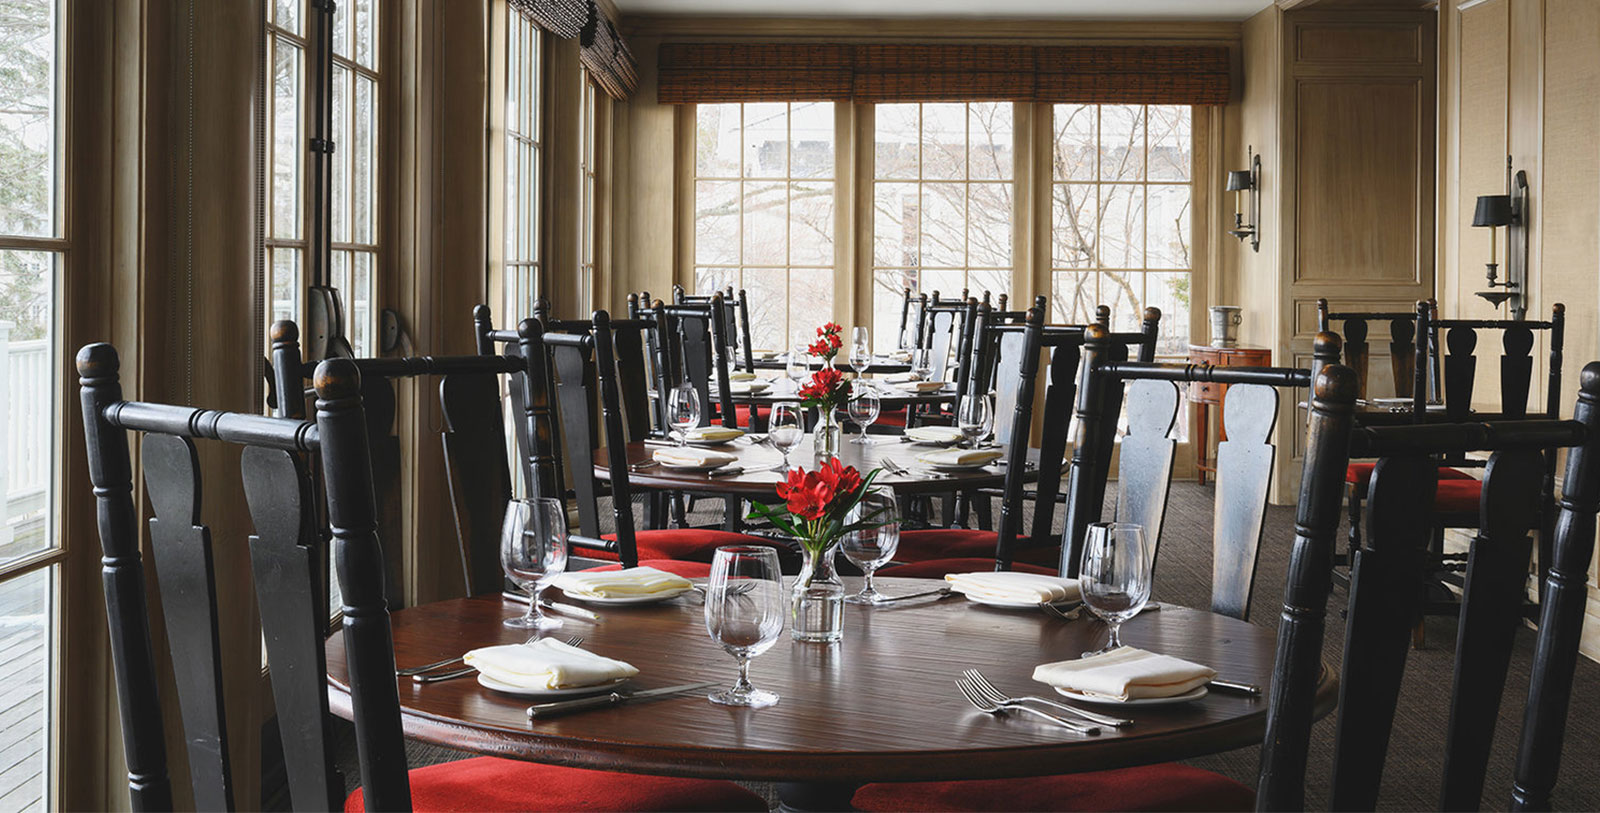 Image of 1833 Kitchen Dining Room at the Inns of Aurora in Aurora, New York